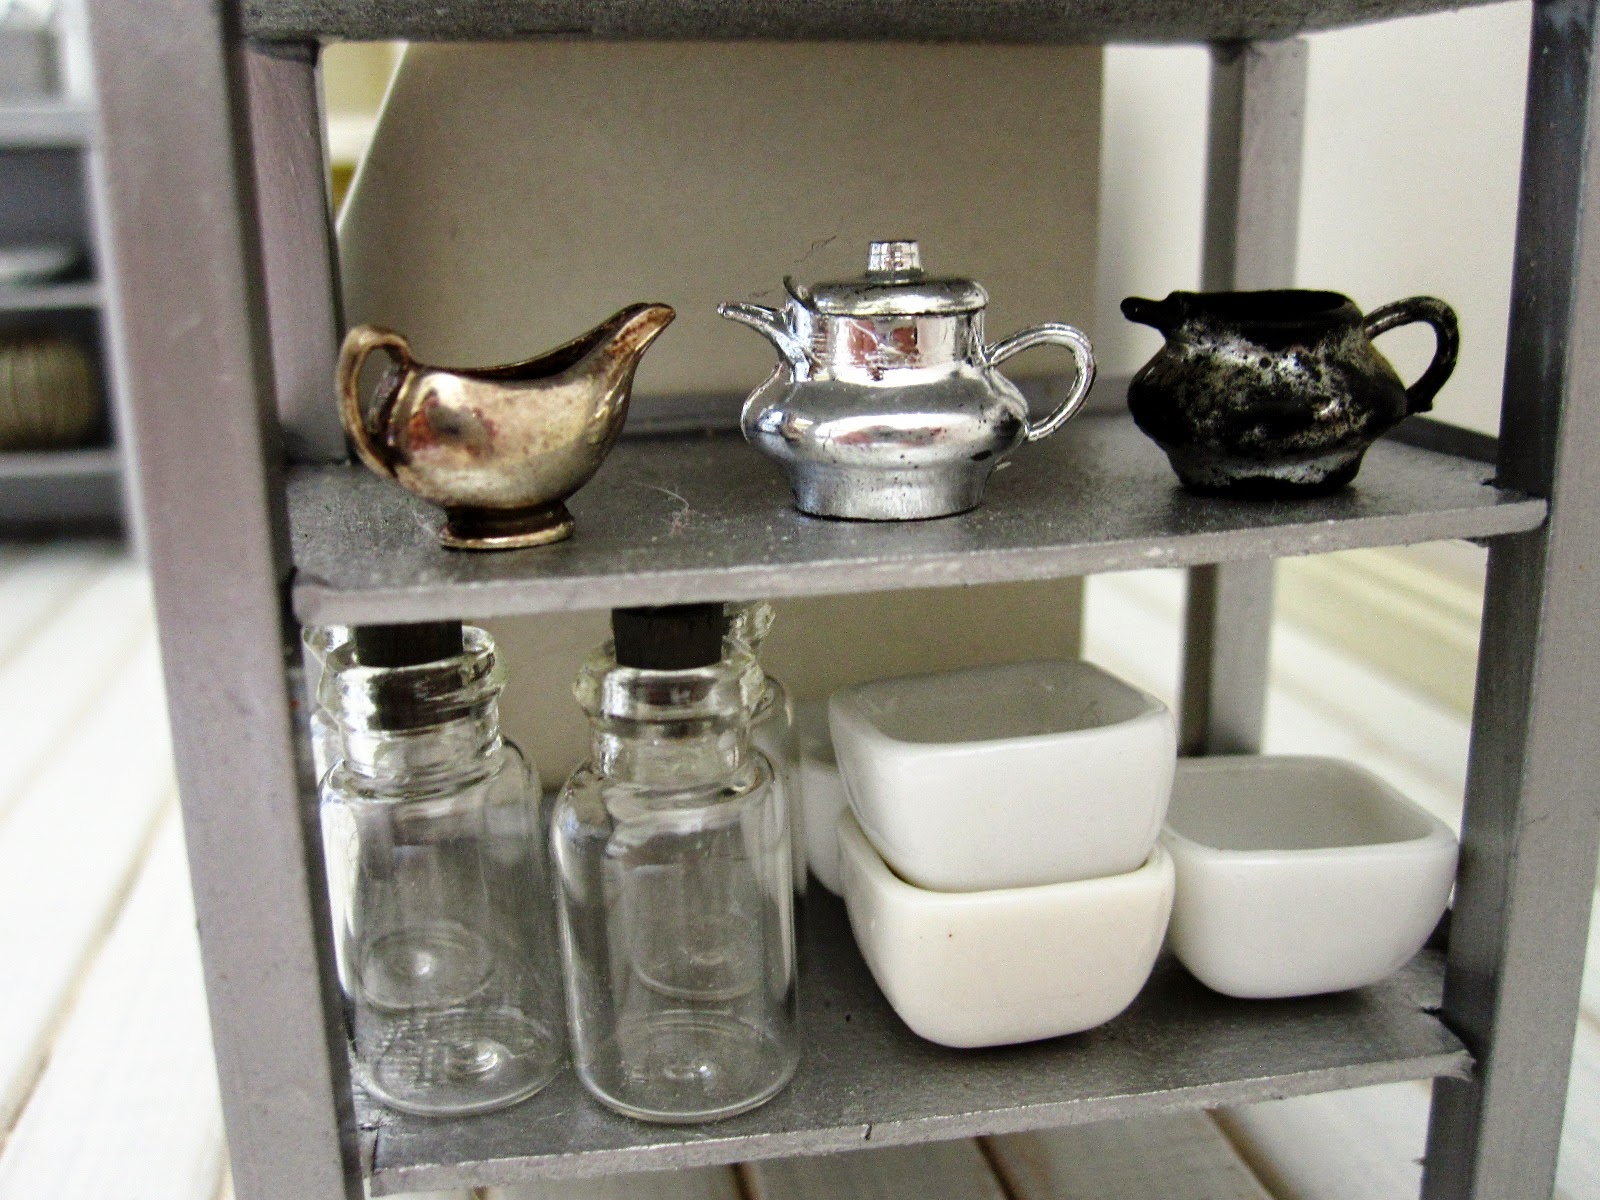 Close up of  a modern dolls' house miniature display of homeware. On the top shelf are three silver vintage jugs, and below are several glass bottles and white bowls.